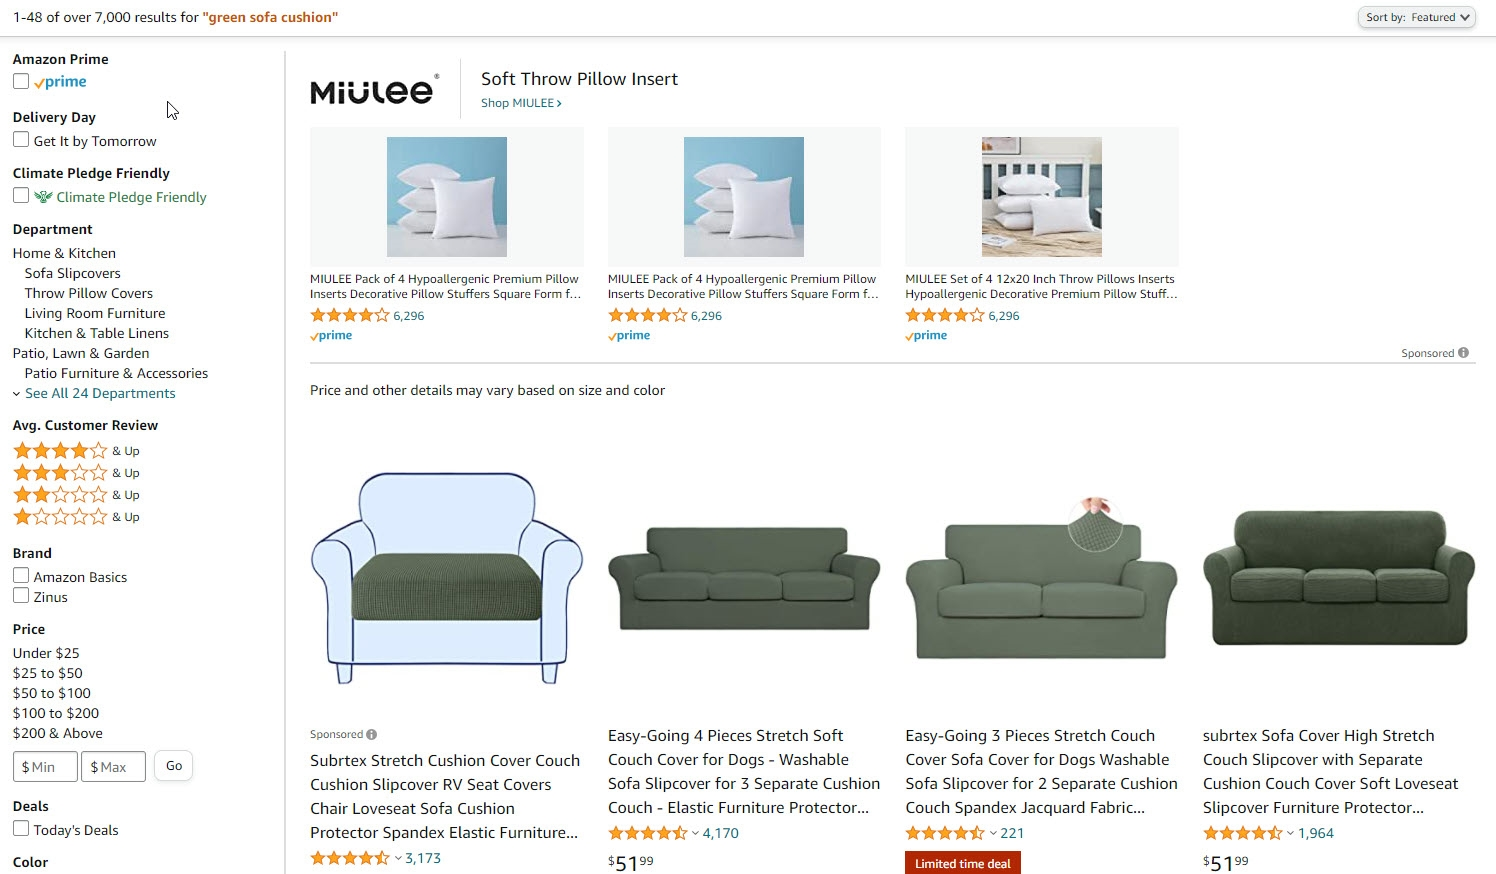 Coming Up On Top: How to Optimize an Amazon Listing